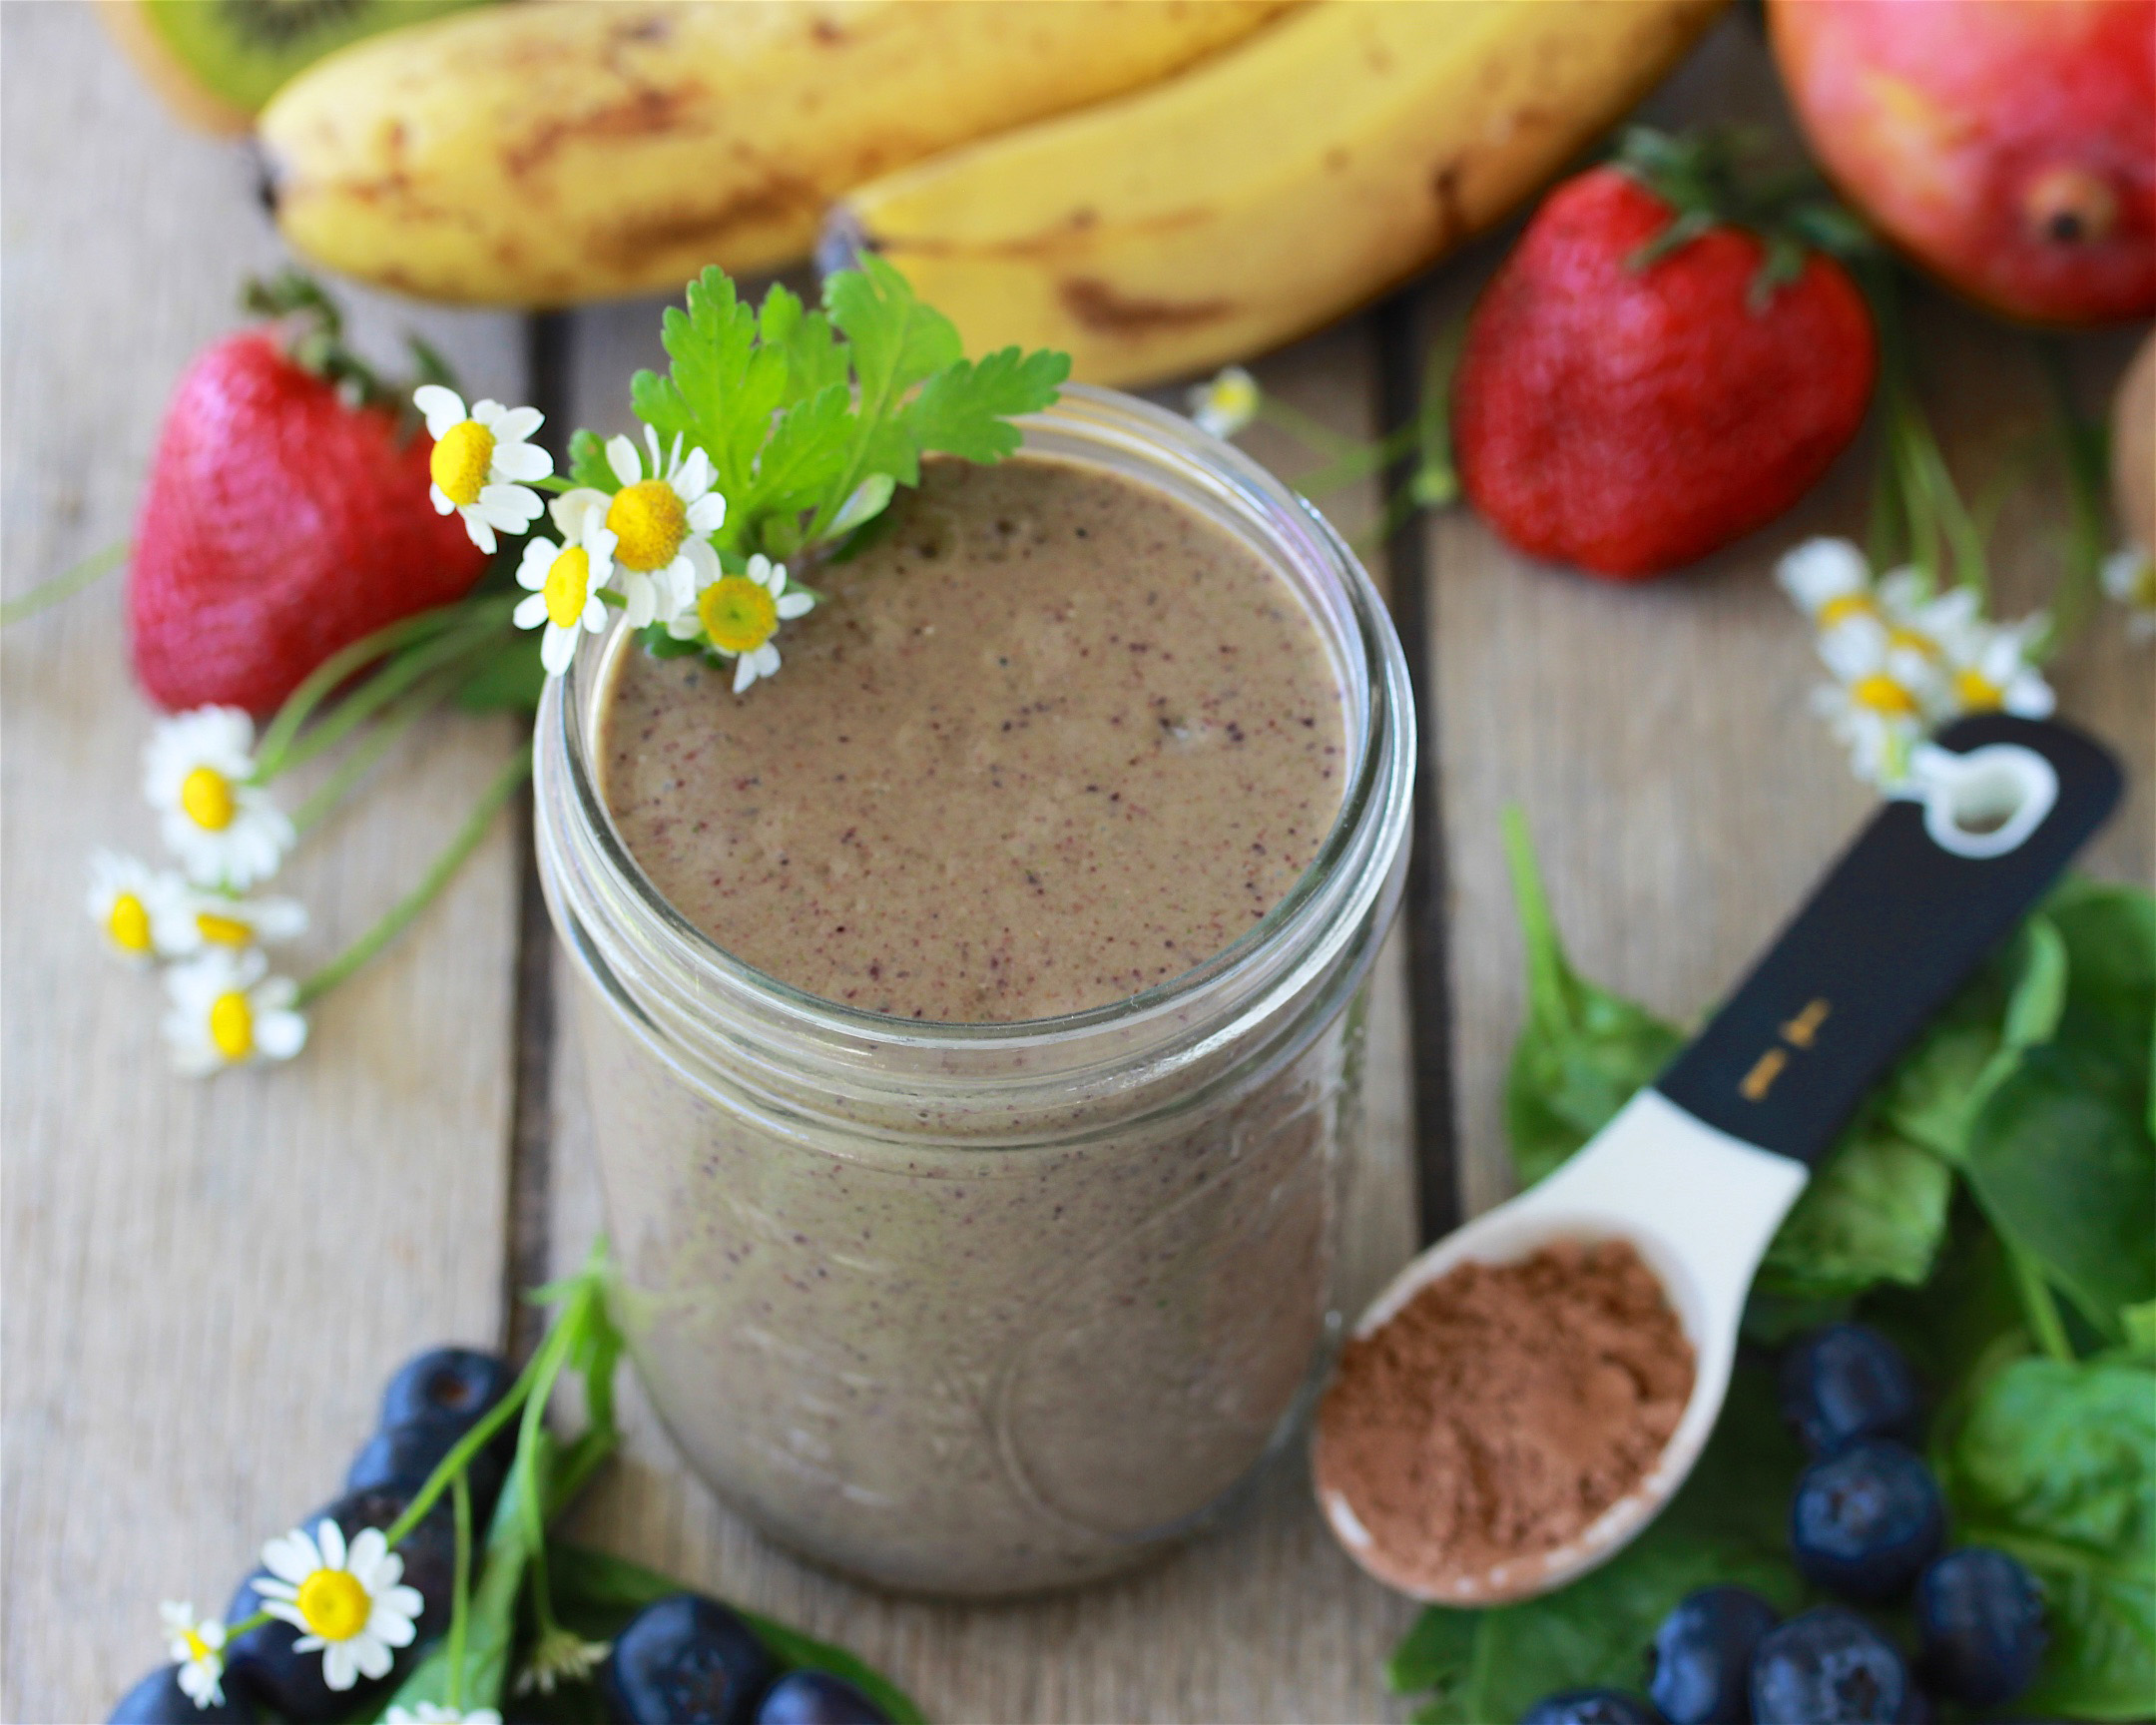 Our Chocolate Blueberry Spinach Protein Smoothie Recipe will help you get a healthy start to the new year! by cookingwithruthie.com